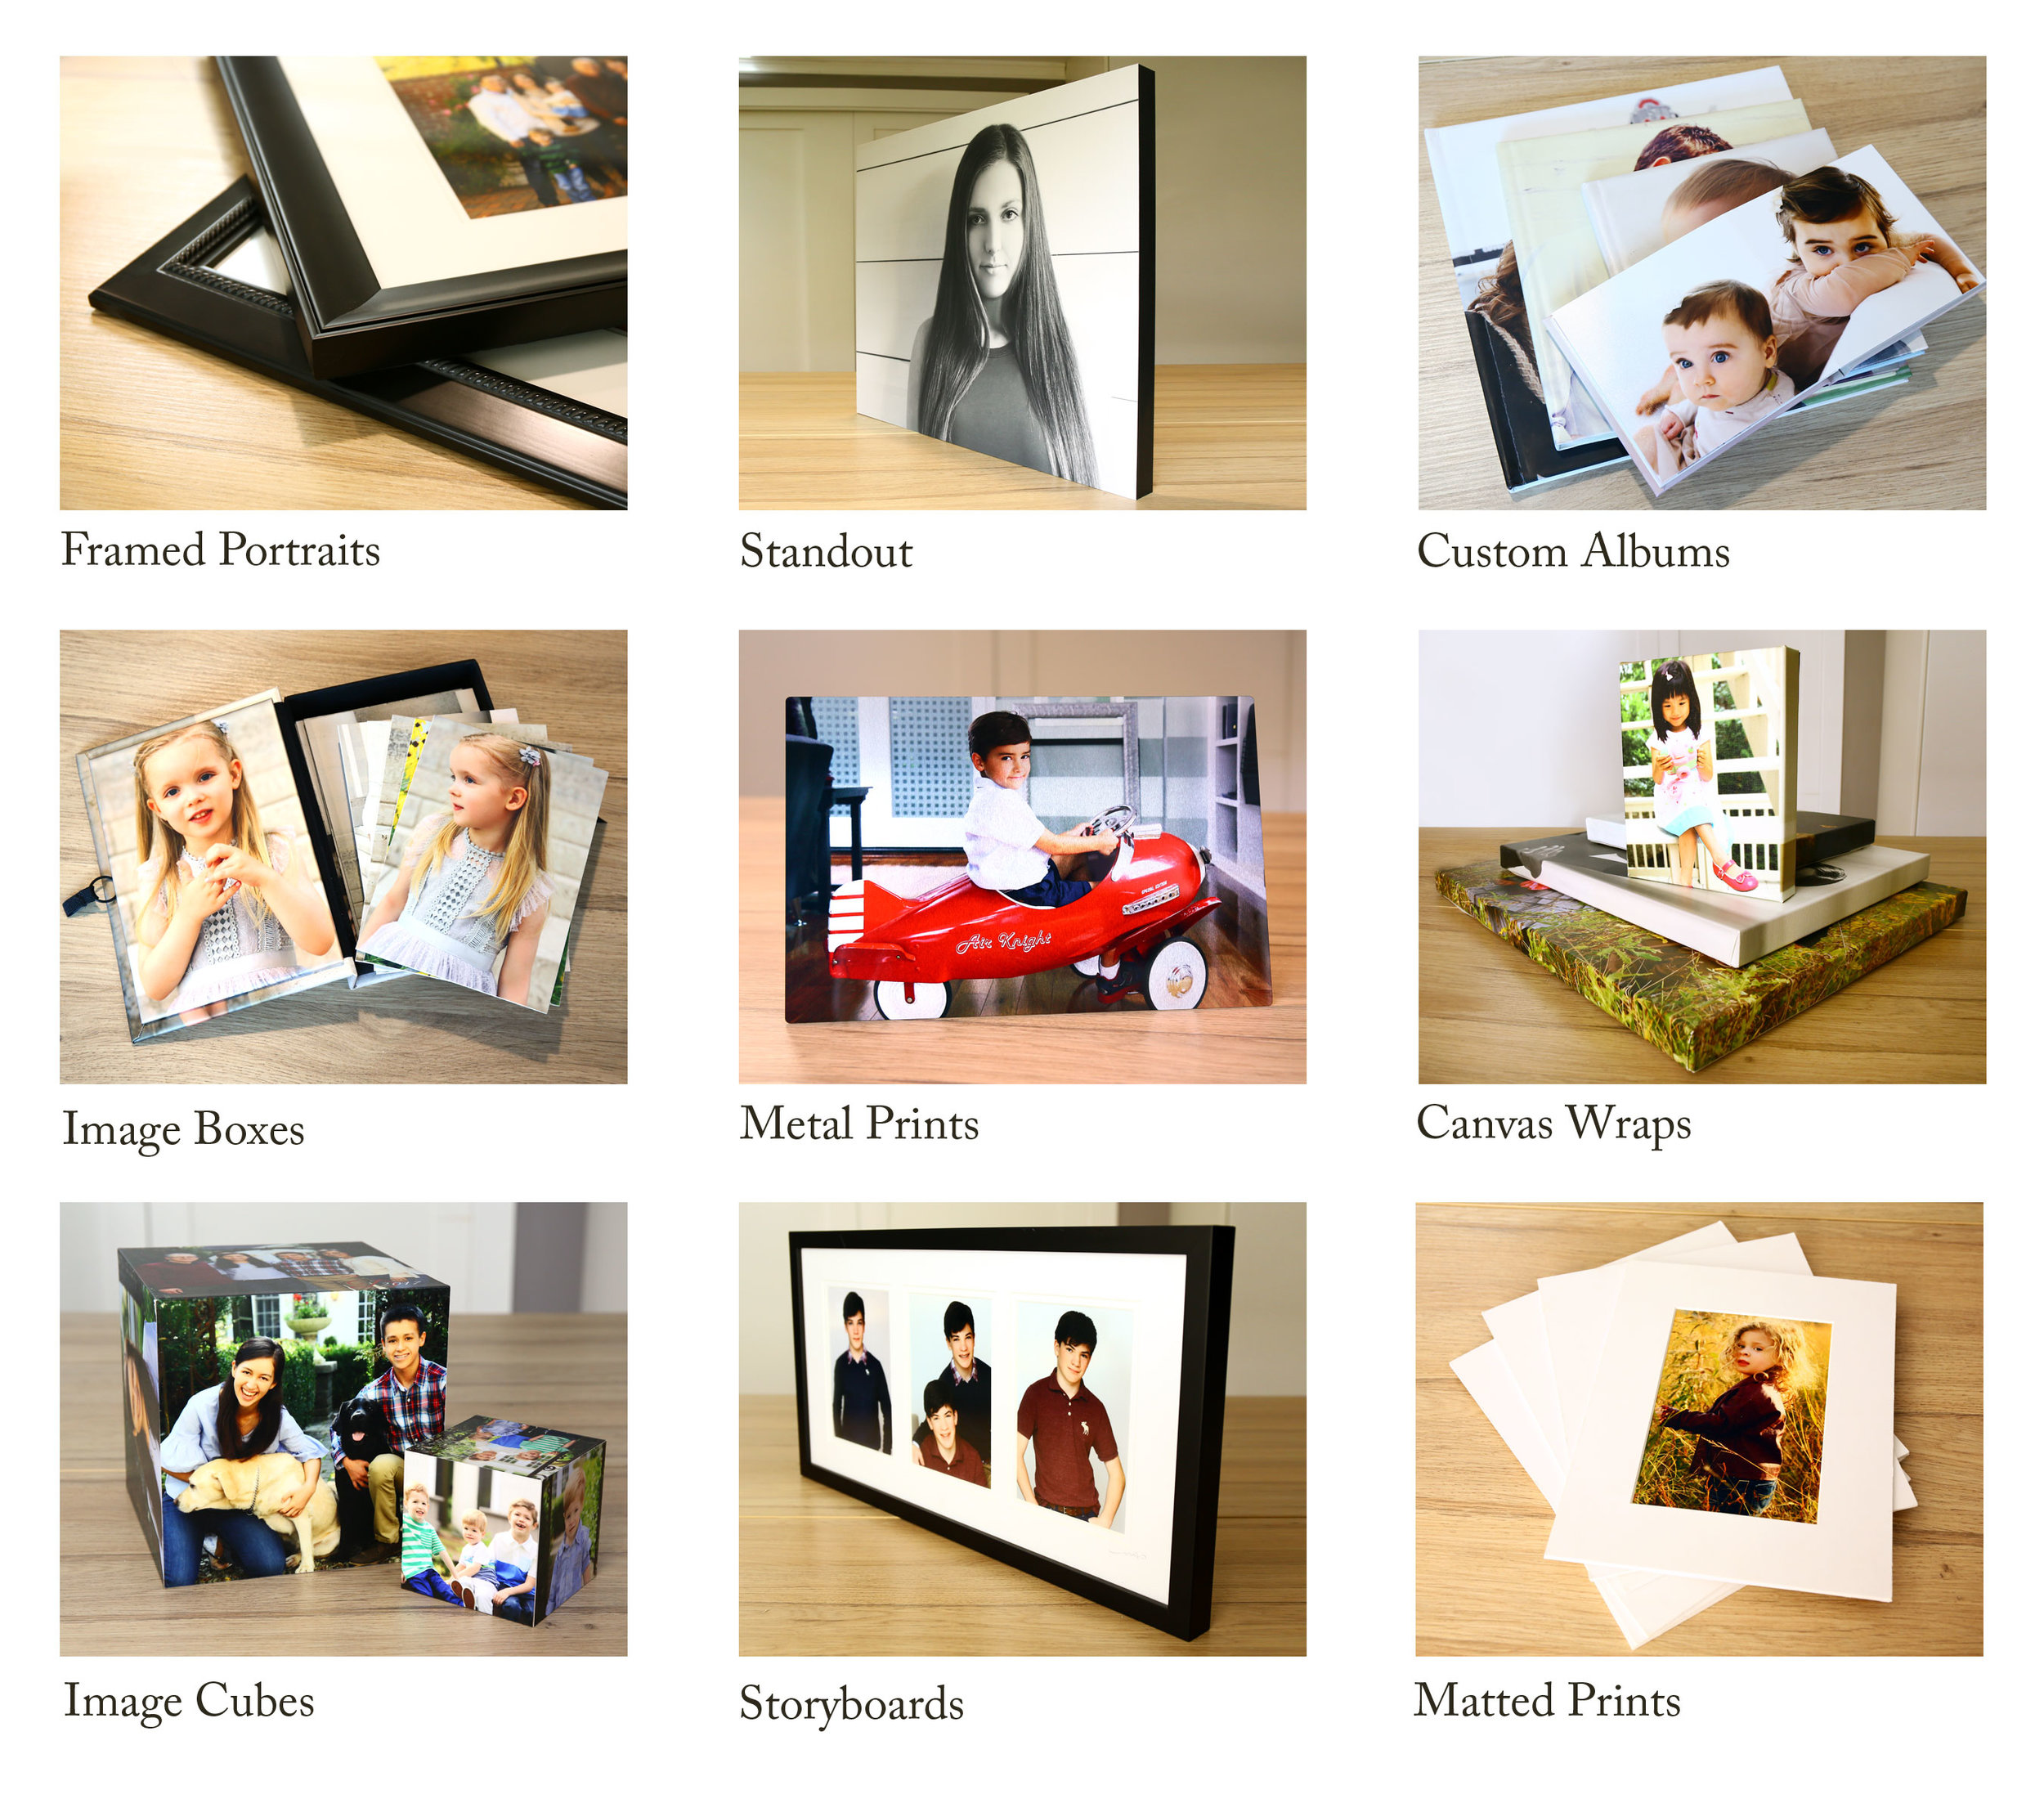 Delivering Excellence & Delight - In addition to professionally printed photographs and finished digital images, we offer a fine array of beautifully crafted custom products to our clients.